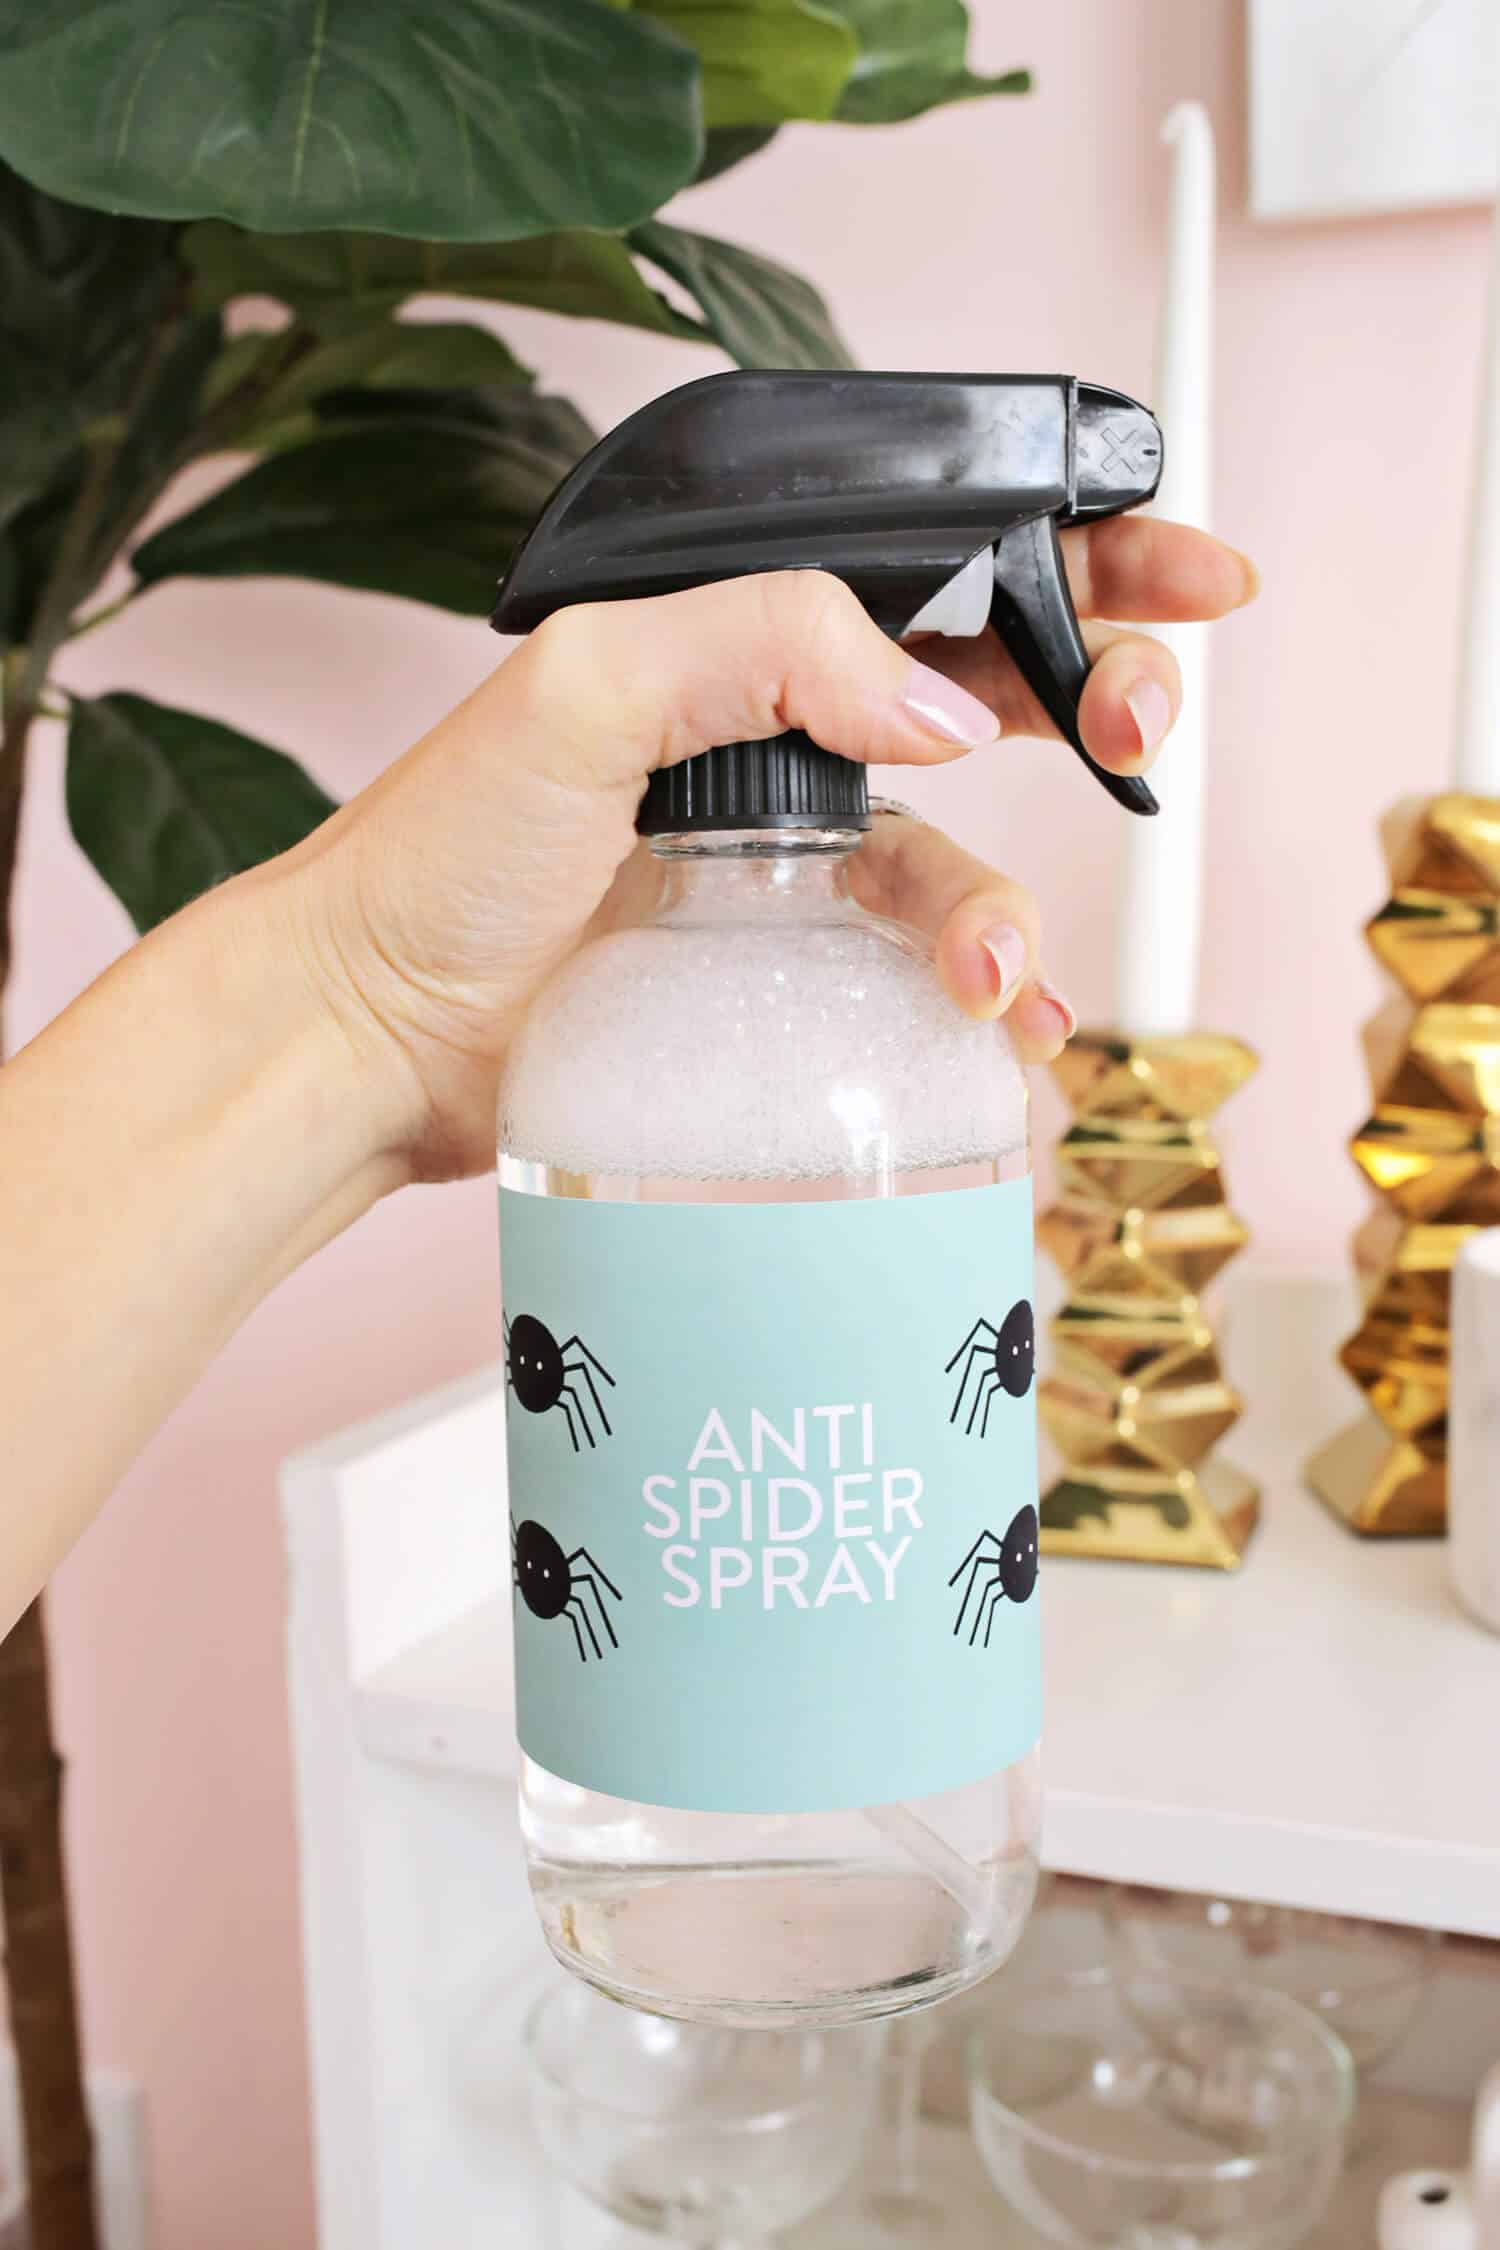 Anti Spinnen Spray Hg Anti Spider Spray Essential Oil Based A Beautiful Mess